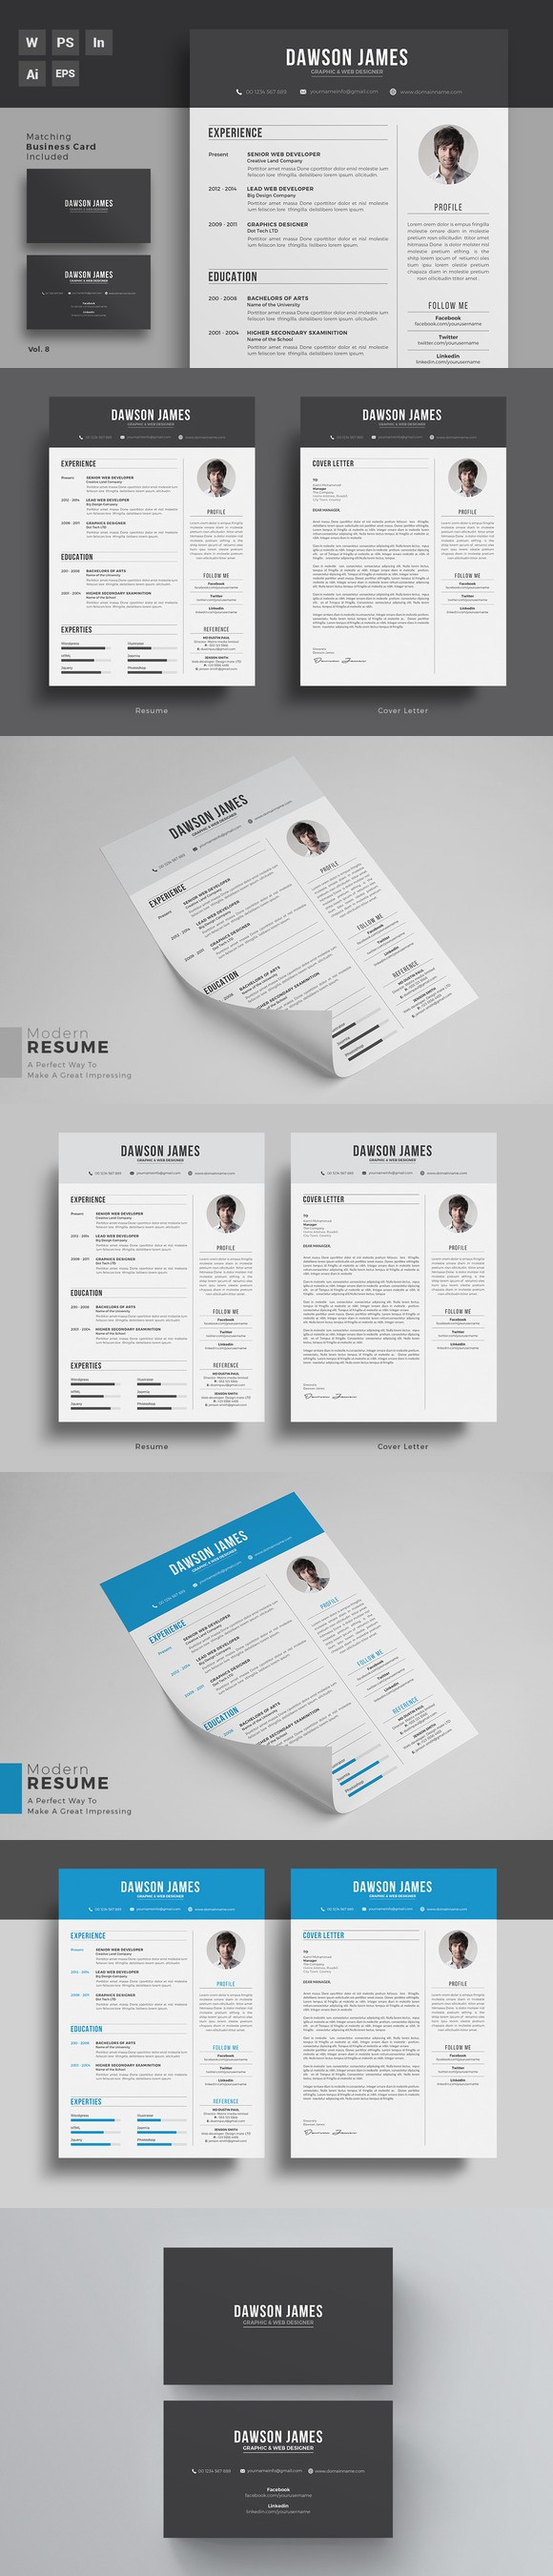 ResumeCv Word  Indesign Business Infographic  Ui